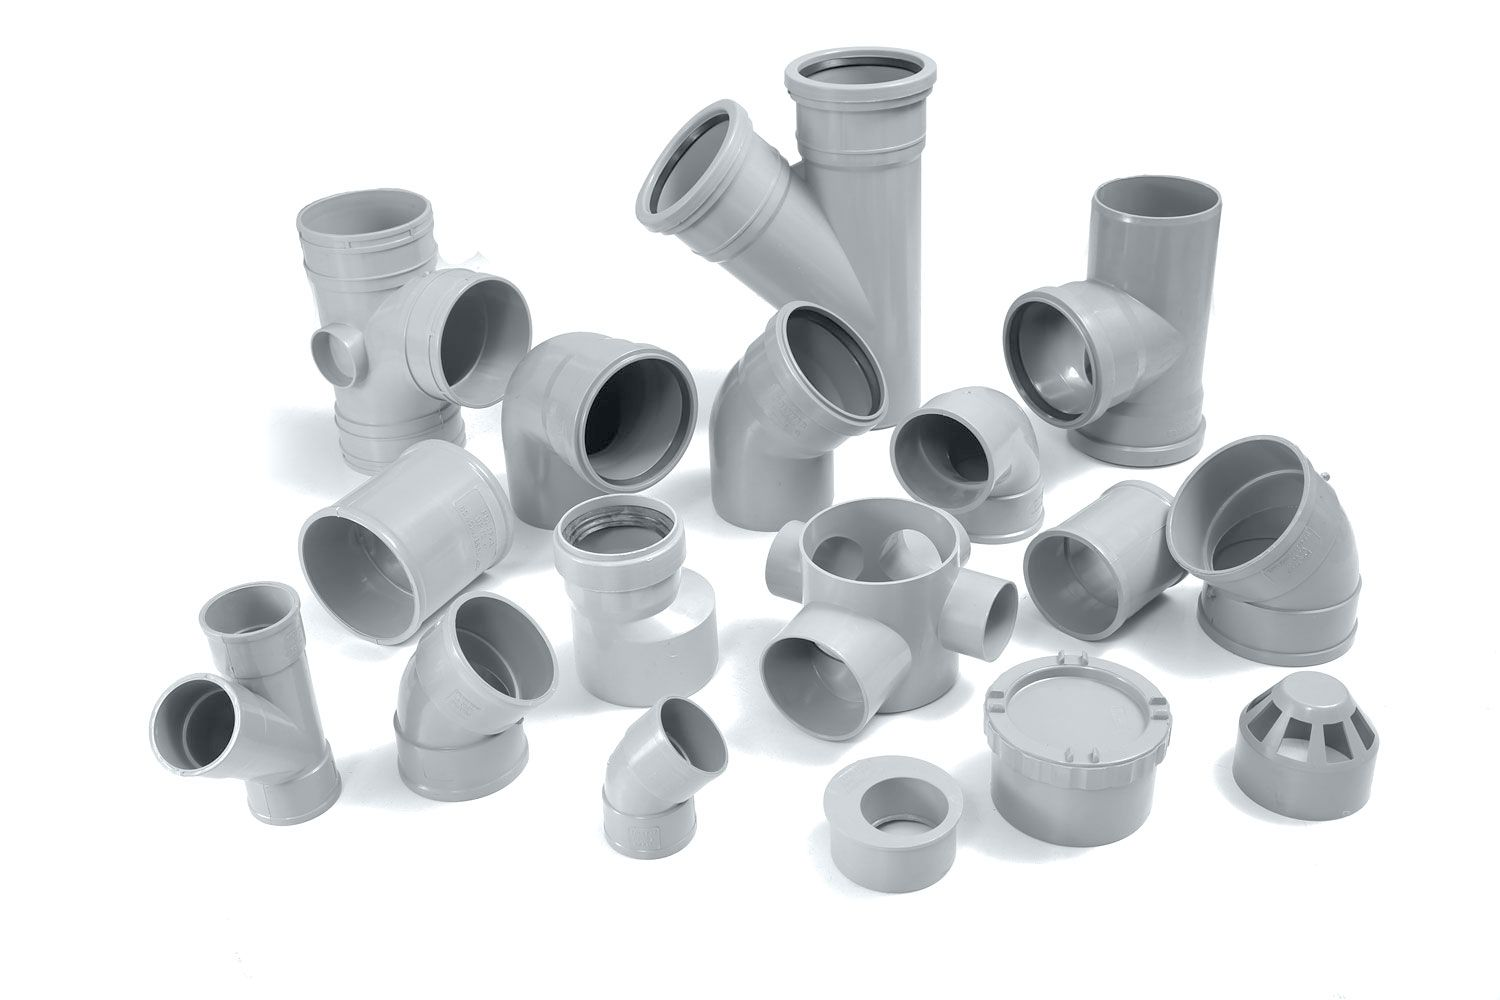 Polyfab is premium UPVC Drainage Pipes Manufacturer in UAE